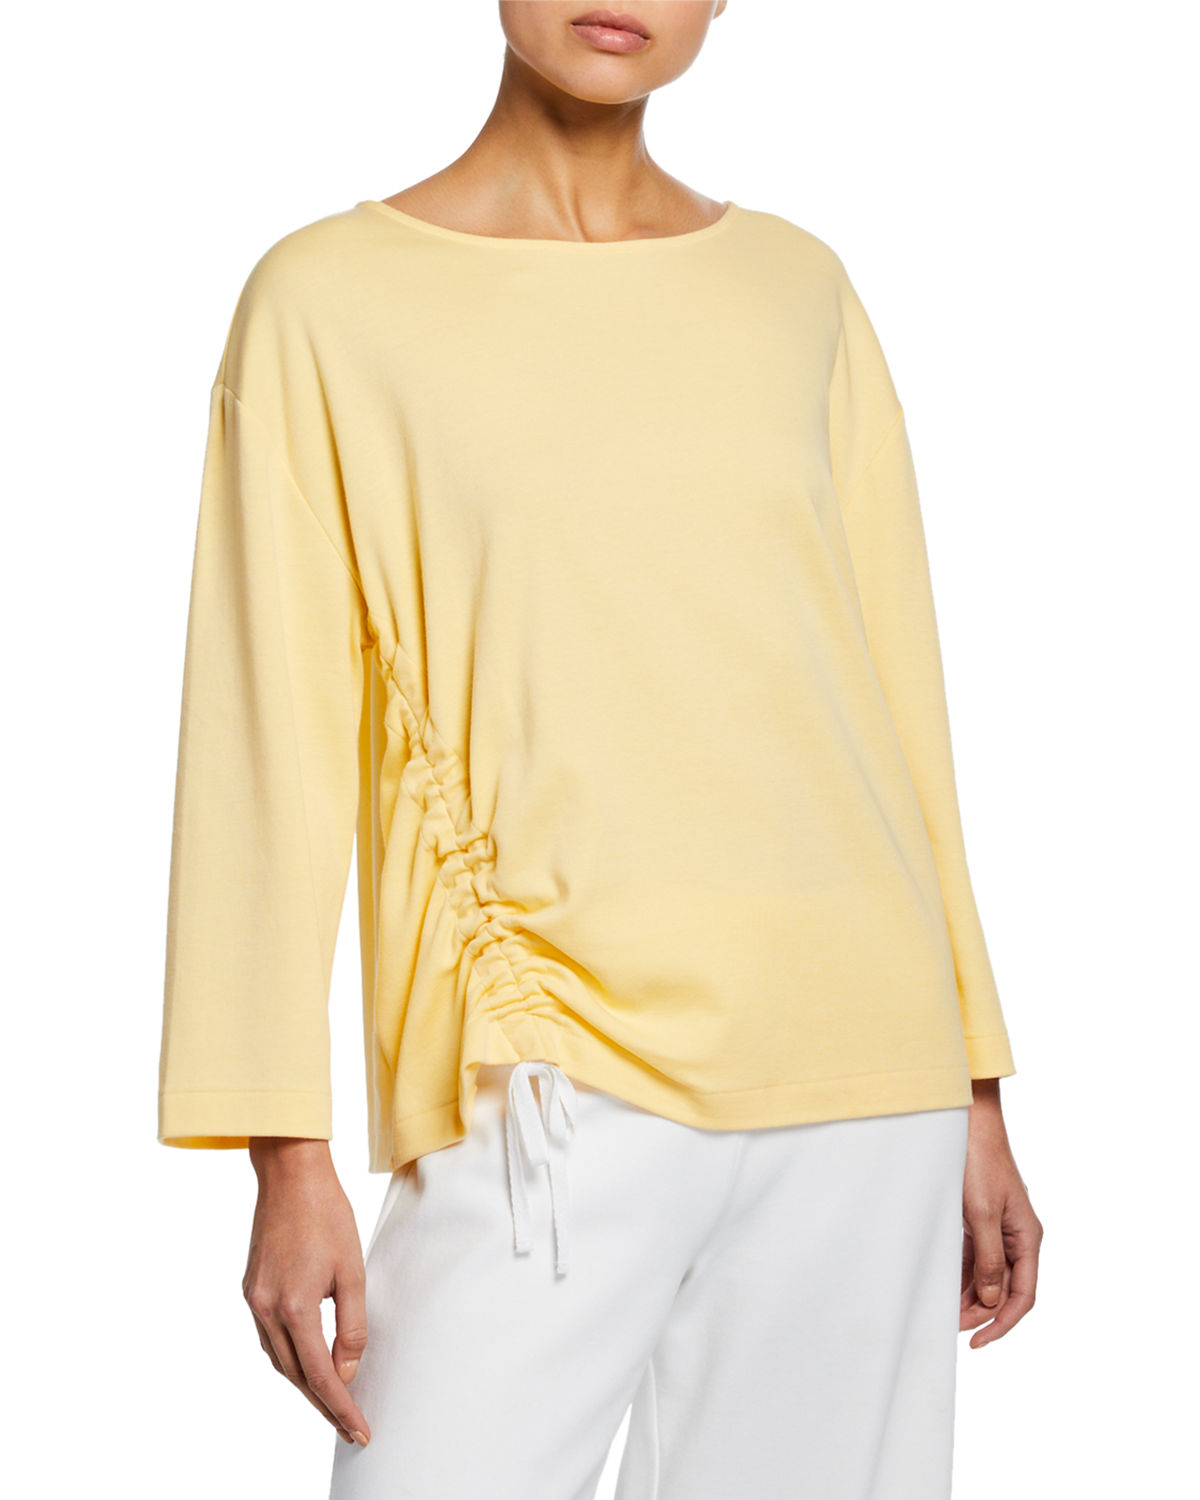 Joan Vass Tops PLUS SIZE LONG-SLEEVE COTTON INTERLOCK TOP WITH RUCHING & TIE DETAIL